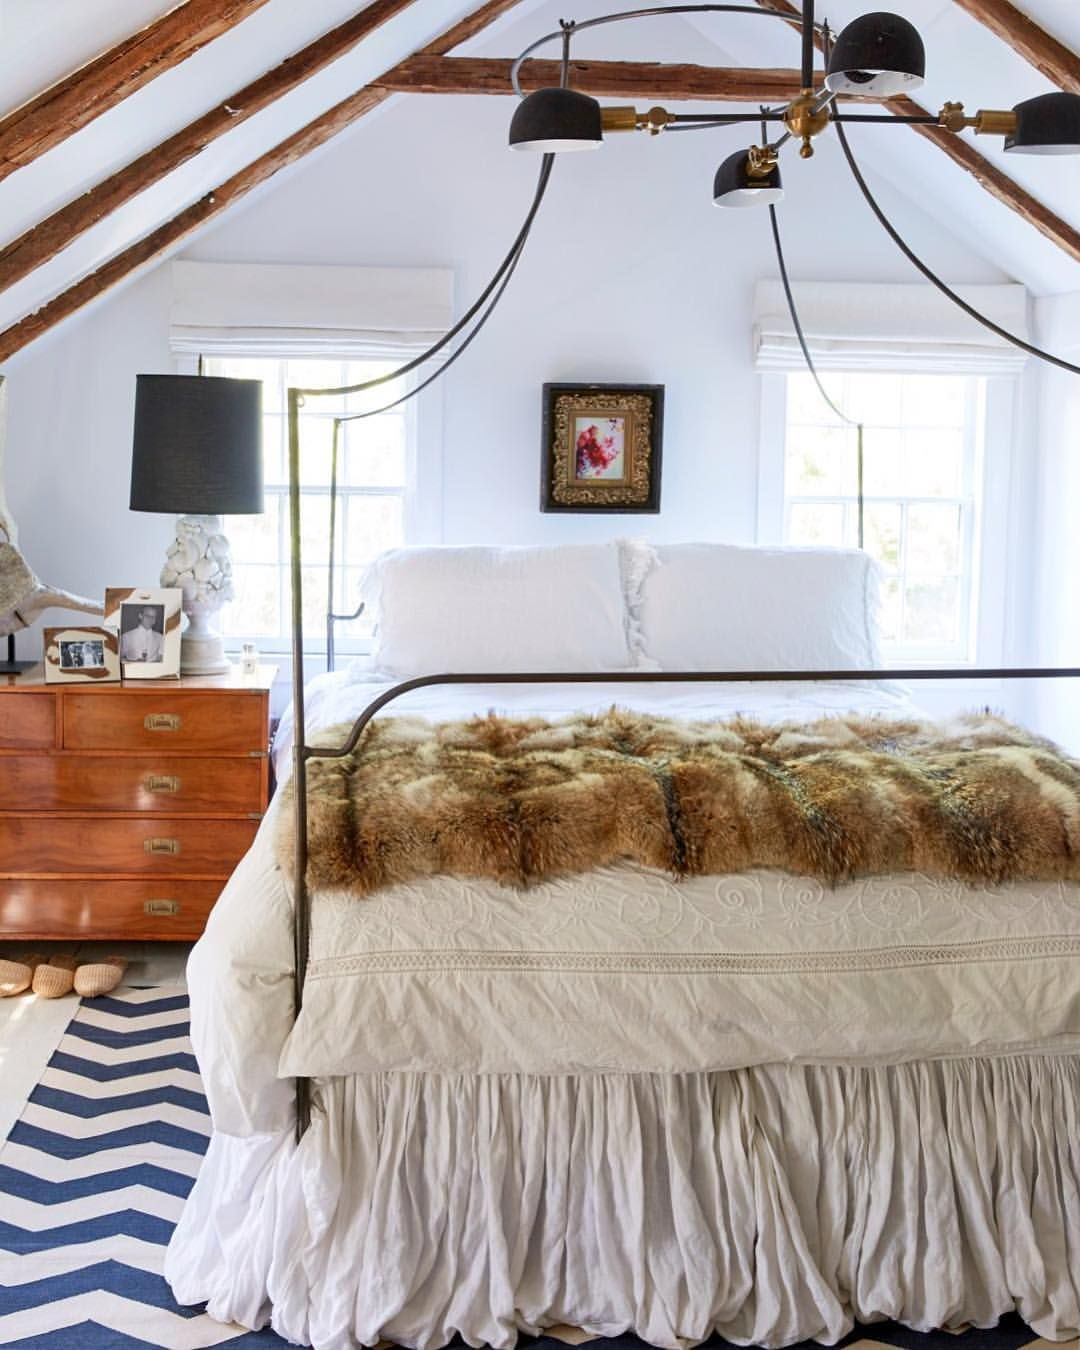 The perfect mix of cozy, rustic, and modern make this ...